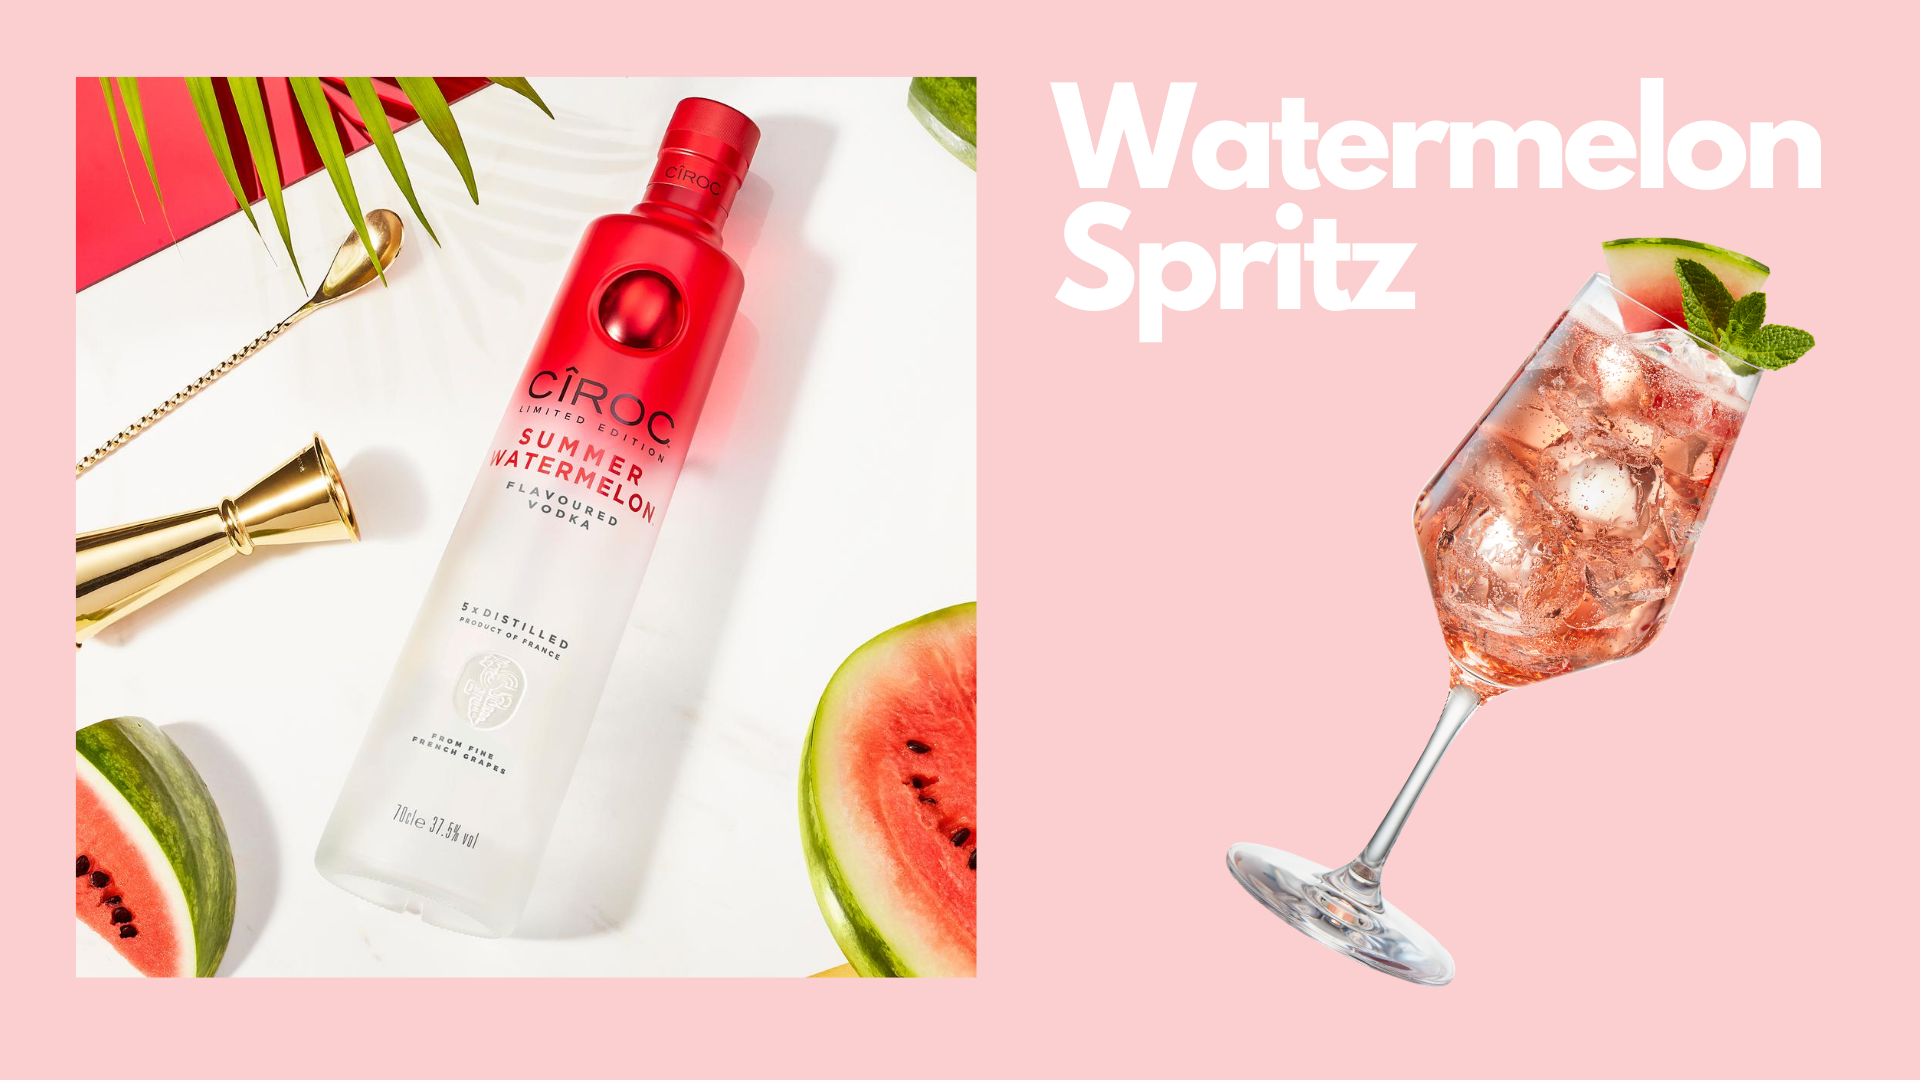 CIROC Summer Watermelon - August is Going to be Fruity!